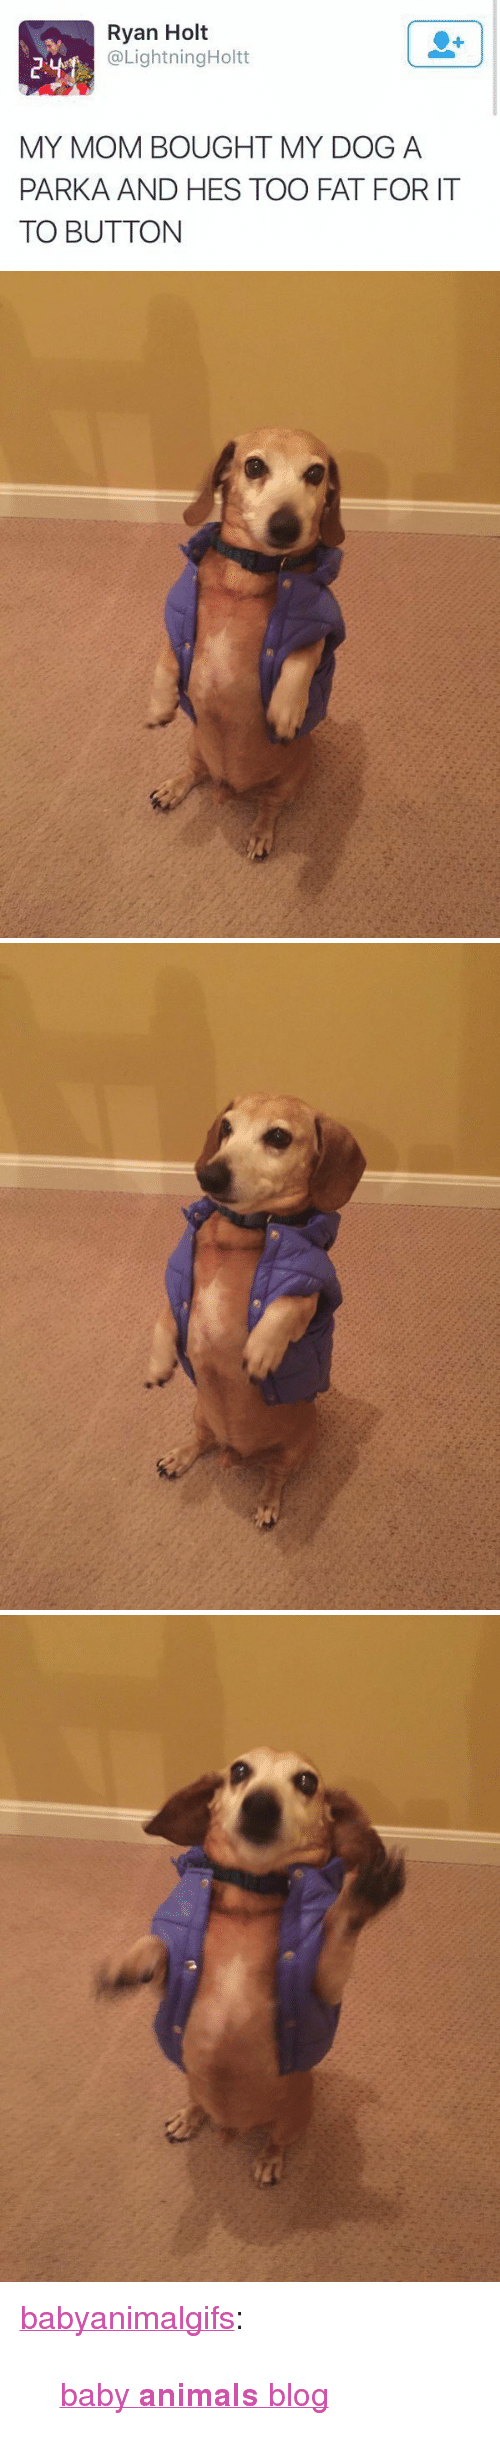 "Baby Animals: Ryan Holt  @LightningHoltt  MY MOM BOUGHT MY DOG A  PARKA AND HES TOO FAT FOR IT  TO BUTTON <p><a href=""http://babyanimalgifs.tumblr.com/post/147400369826/baby-animals-blog"" class=""tumblr_blog"" target=""_blank"">babyanimalgifs</a>:</p>  <blockquote><p><a href=""http://babyanimalgifs.tumblr.com/"" target=""_blank"">baby <b>animals</b> blog</a></p></blockquote>"